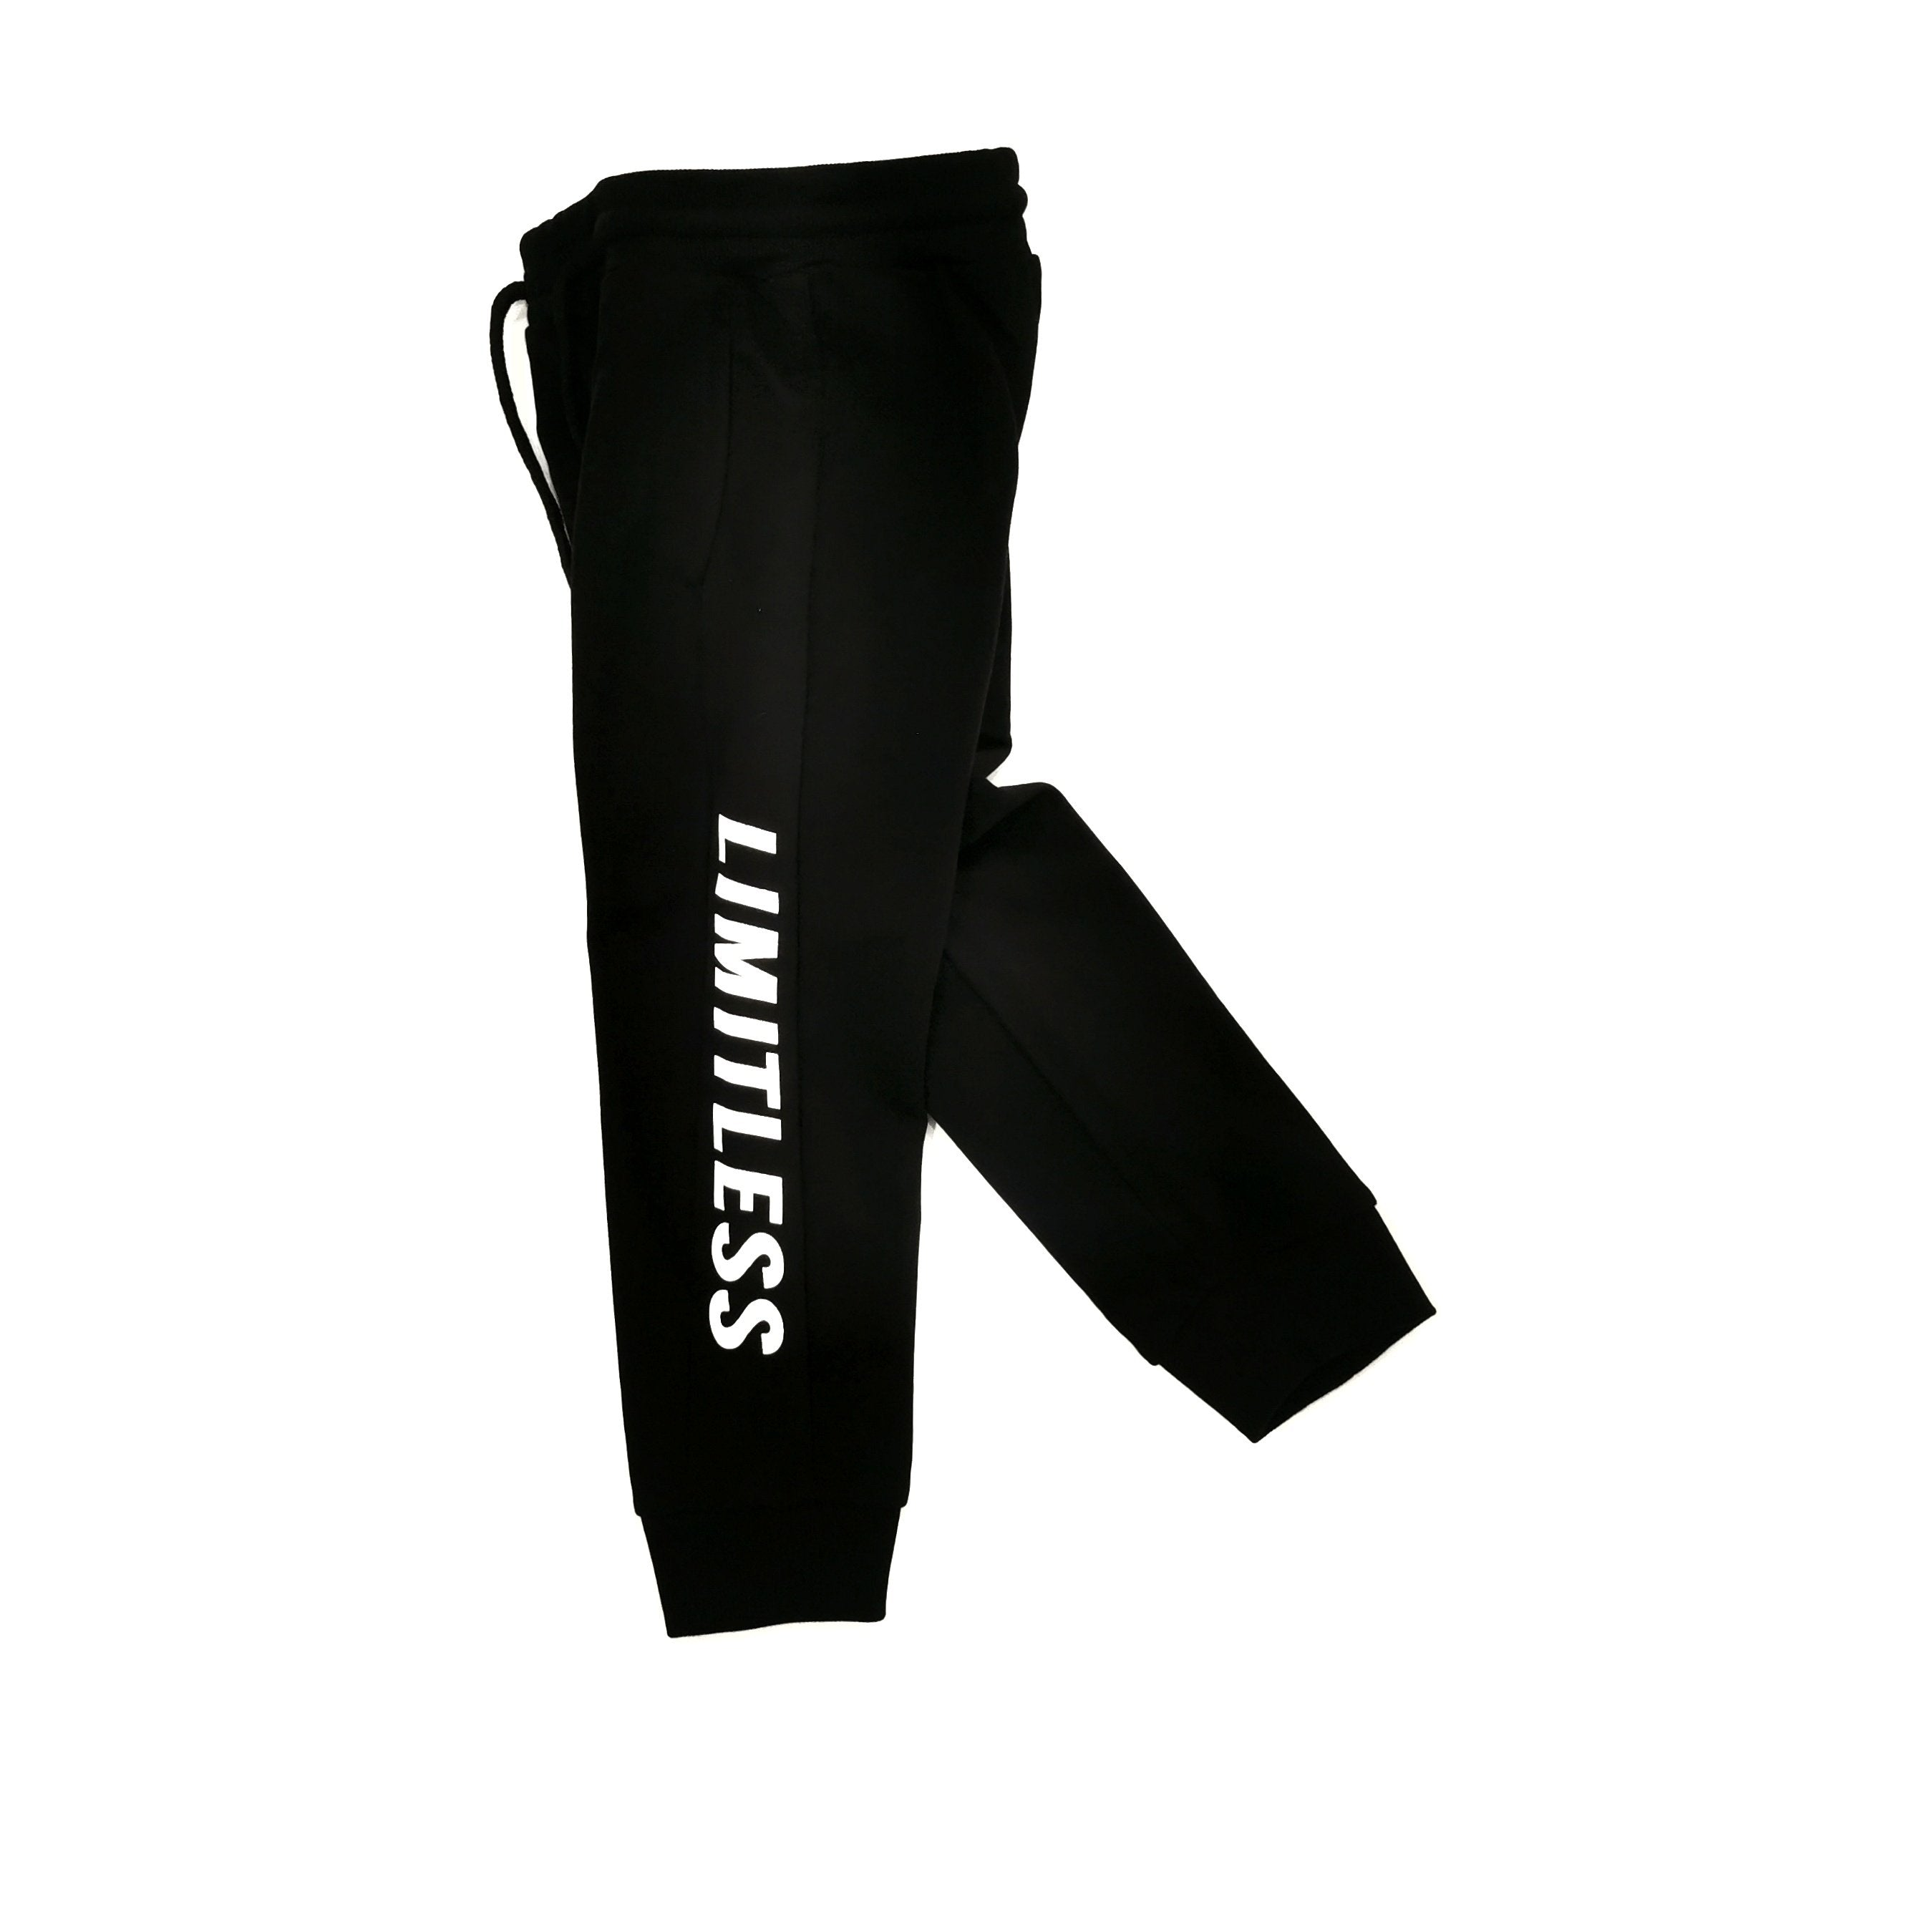 Limitless Sweatpants for Toddlers